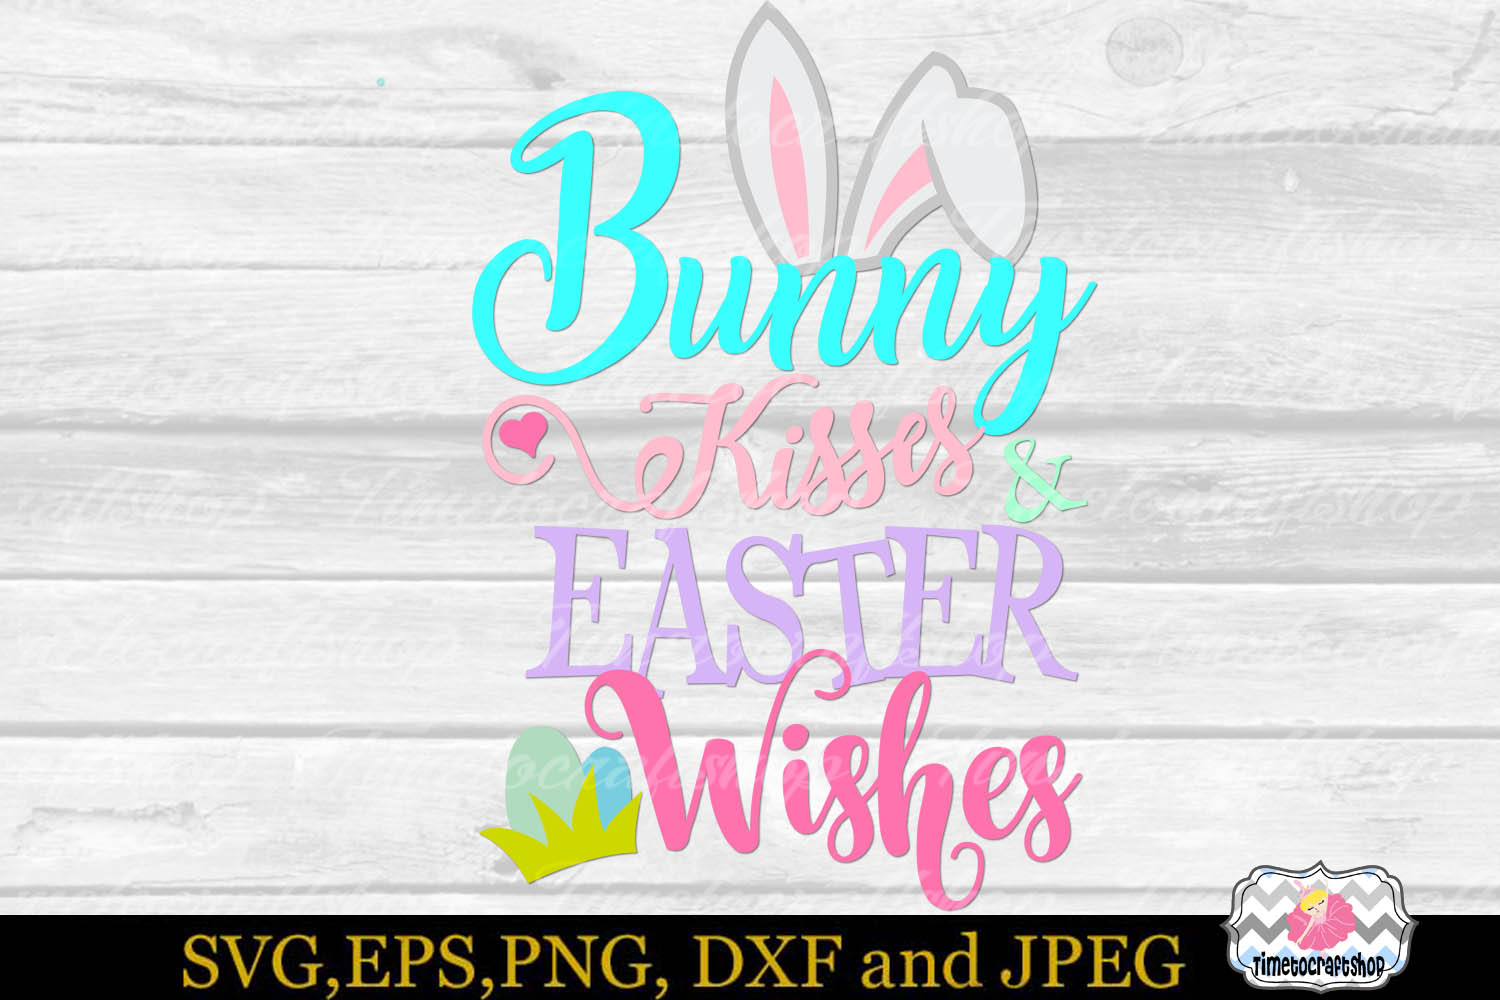 SVG, Eps, Dxf & Png Bunny Kisses and Easter Wishes example image 2